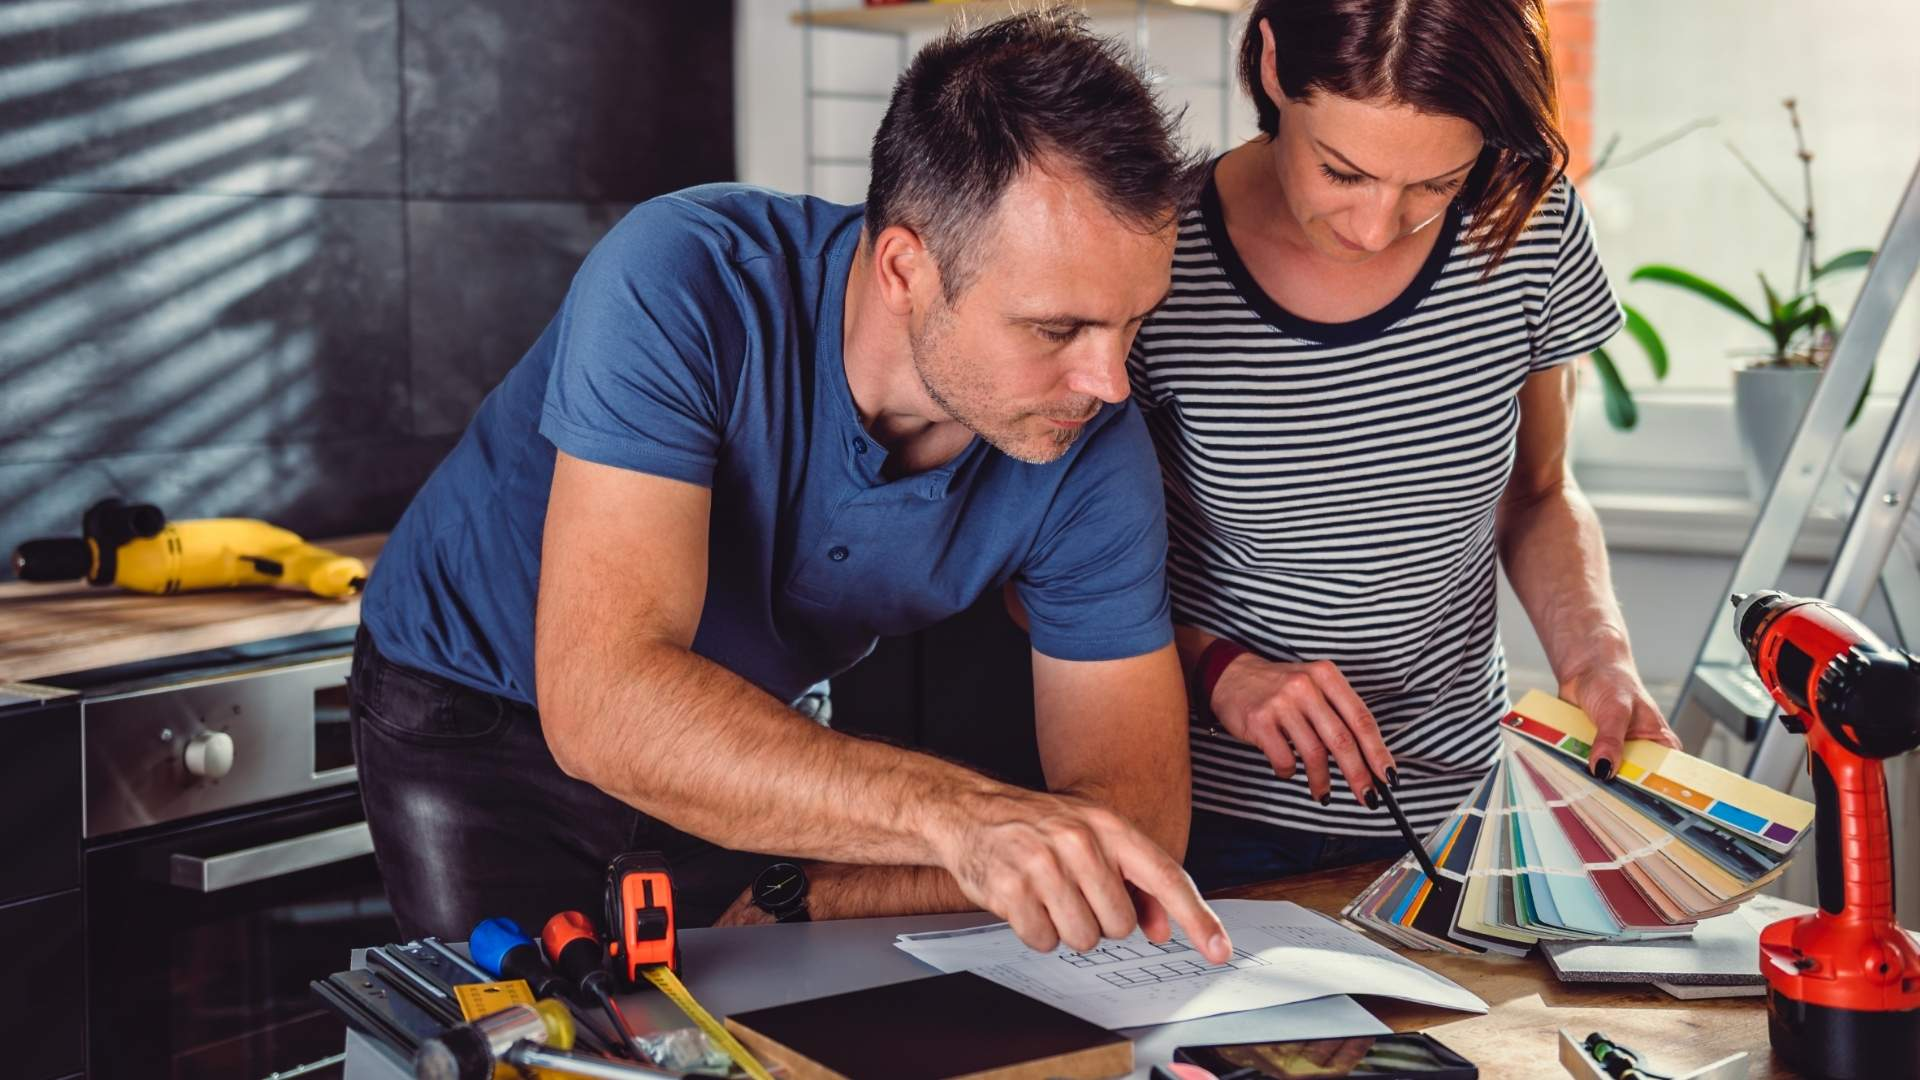 You need a plumber for your home renovation